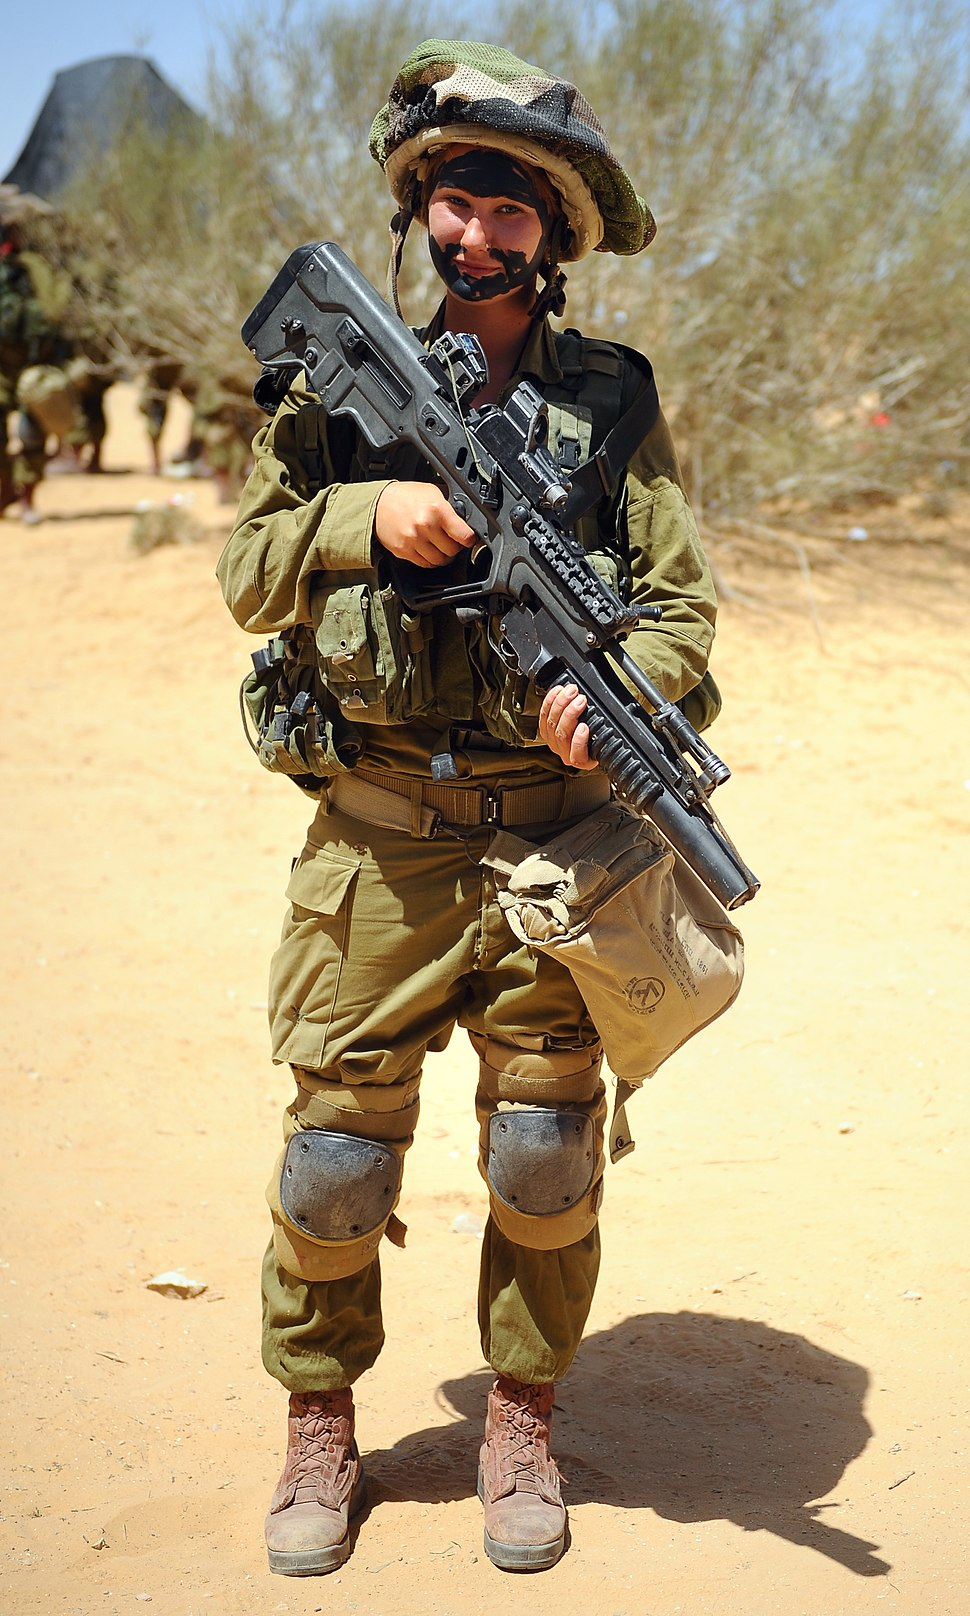 Flickr - Israel Defense Forces - Pose for the Camera (cropped)